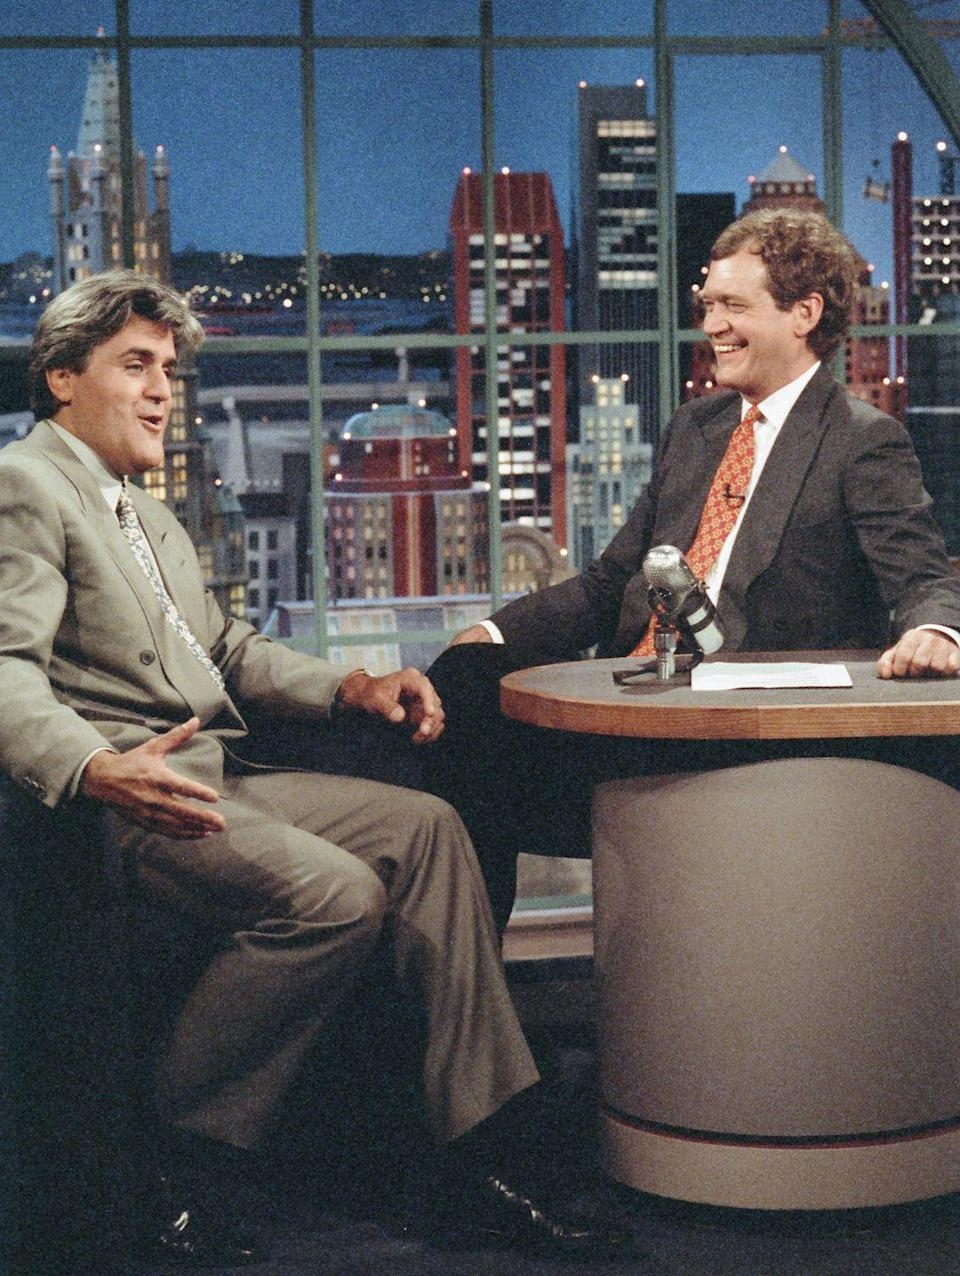 """<p>The <a href=""""https://people.com/tv/david-letterman-feud-jay-leno-a-new-biography-host-unhappiness"""" rel=""""nofollow noopener"""" target=""""_blank"""" data-ylk=""""slk:biggest feud in late-night history"""" class=""""link rapid-noclick-resp"""">biggest feud in late-night history</a> occurred when Johnny Carson announced he was leaving NBC's <em>The Tonight Show</em> in 1992. David Letterman — who hosted his own show on the same network — was widely expected to be Carson's replacement, but much to everyone's surprise, comedian Jay Leno ended up landing the coveted gig. Not soon after, David left NBC to host <em>The</em> <em>Late Show with David Letterma</em><em>n </em>on CBS instead — right opposite Leno's time-slot.</p>"""